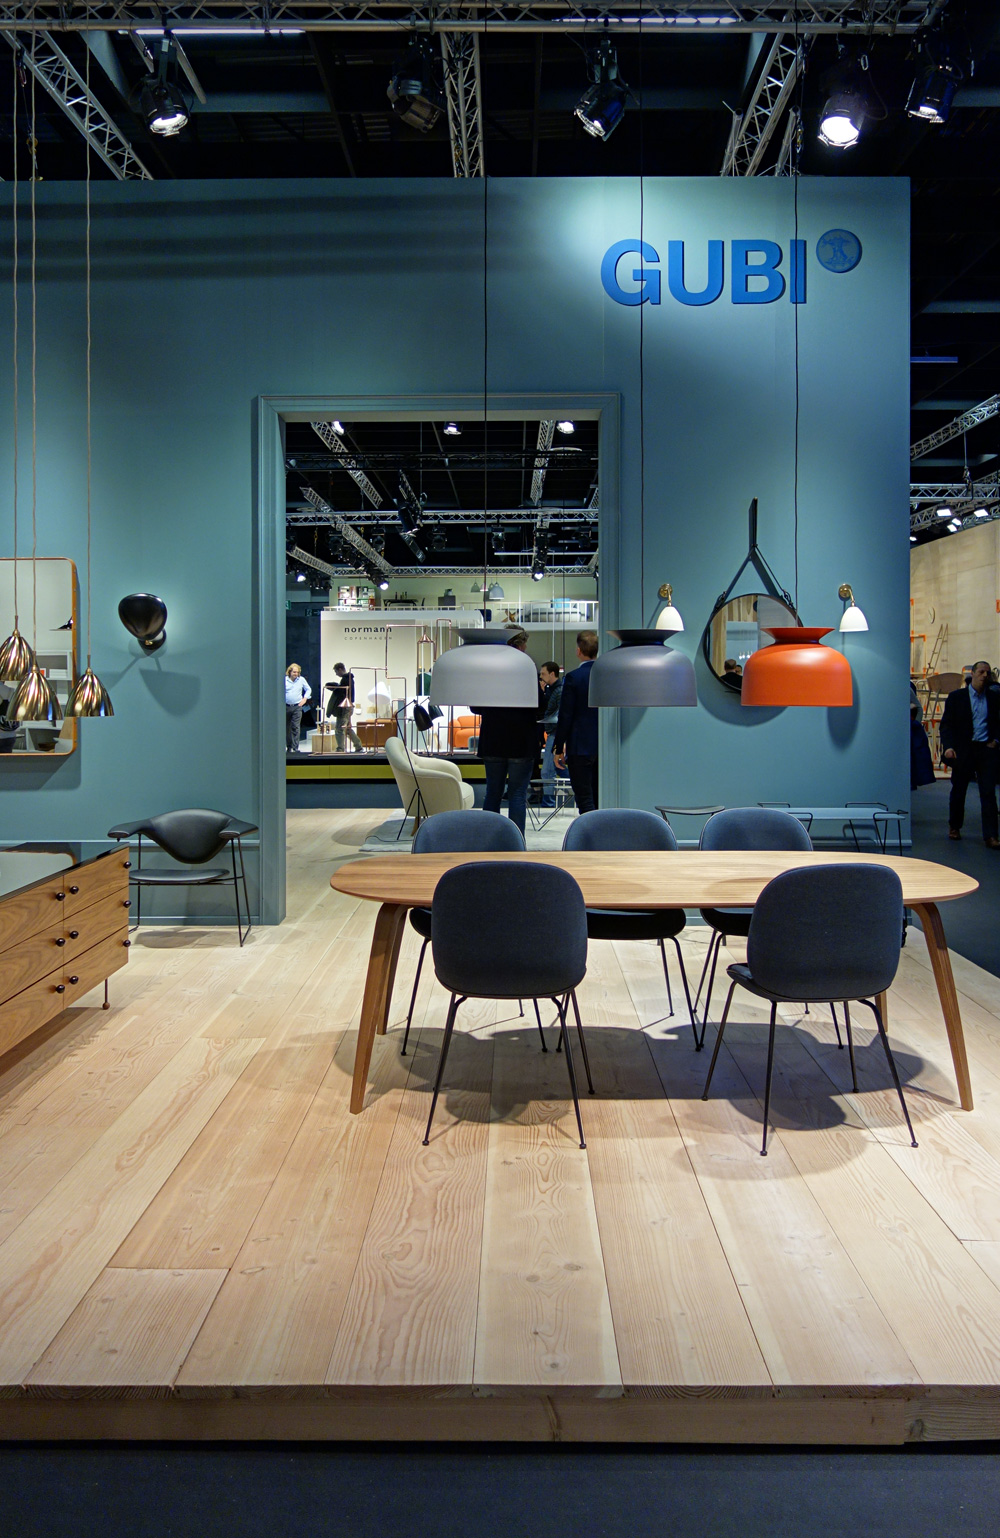 IMM-2014-Internationale-Moebelmesse-Koeln-Gubi-2